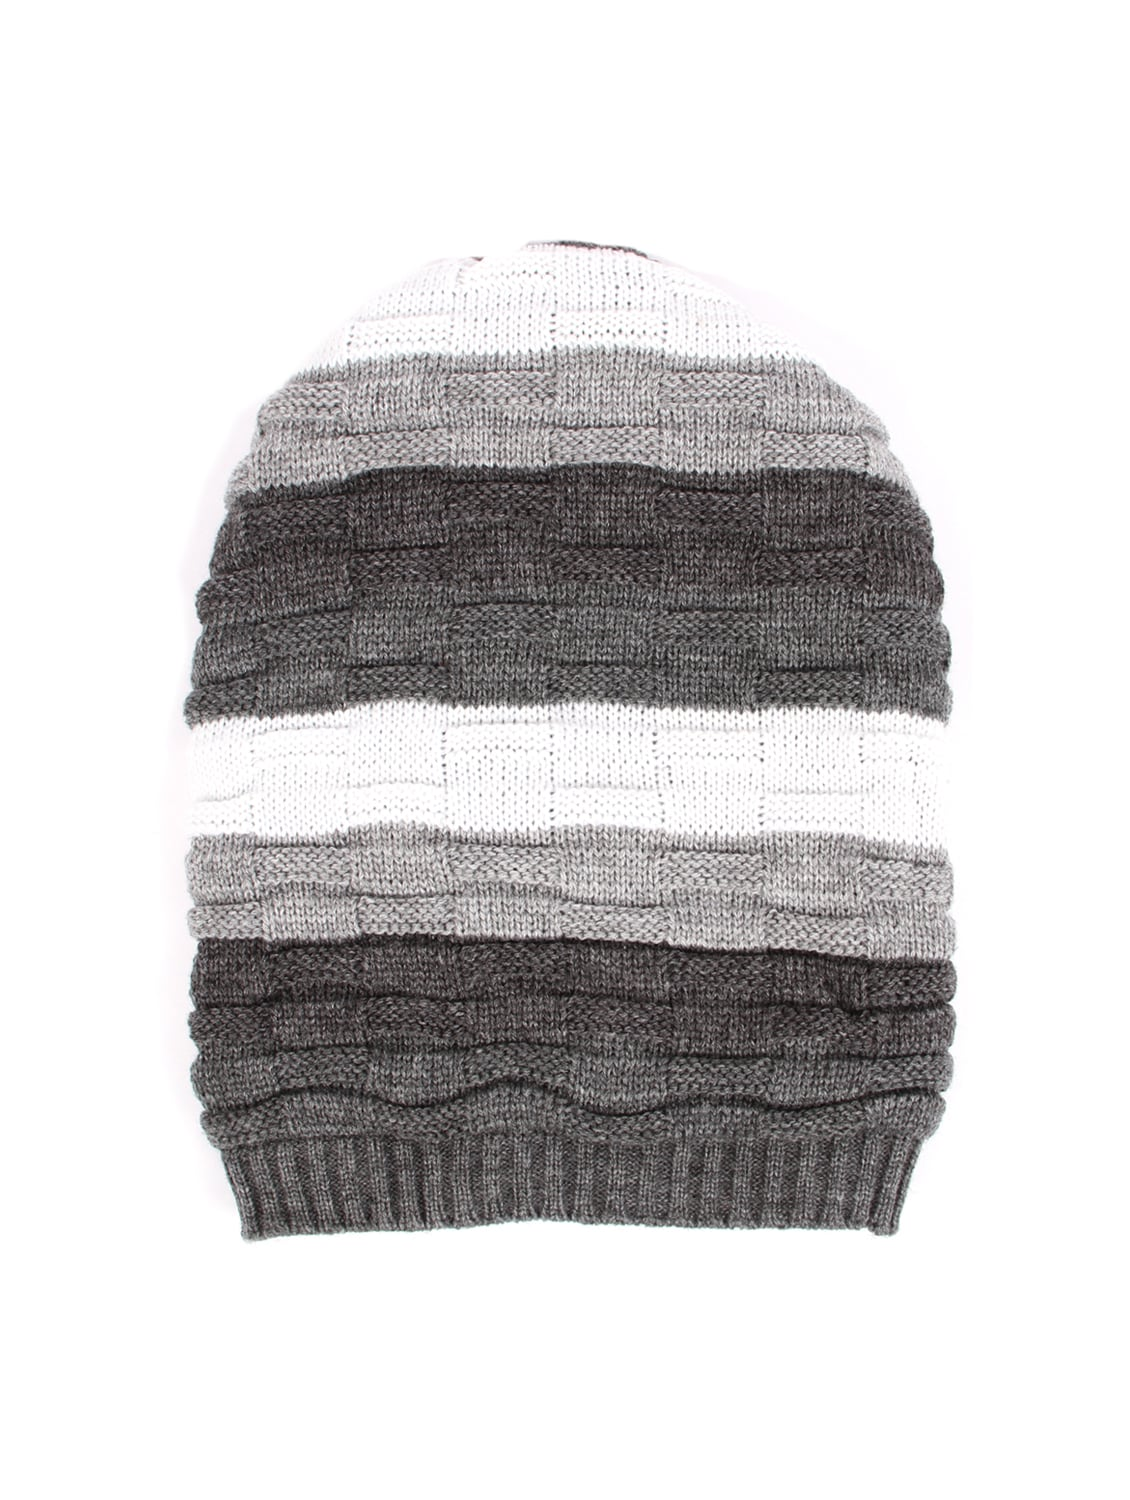 Buy Multi Colored Wool Beanies Cap by Knotyy - Online shopping for Caps And  Hats in India  9c3d60e3fb0